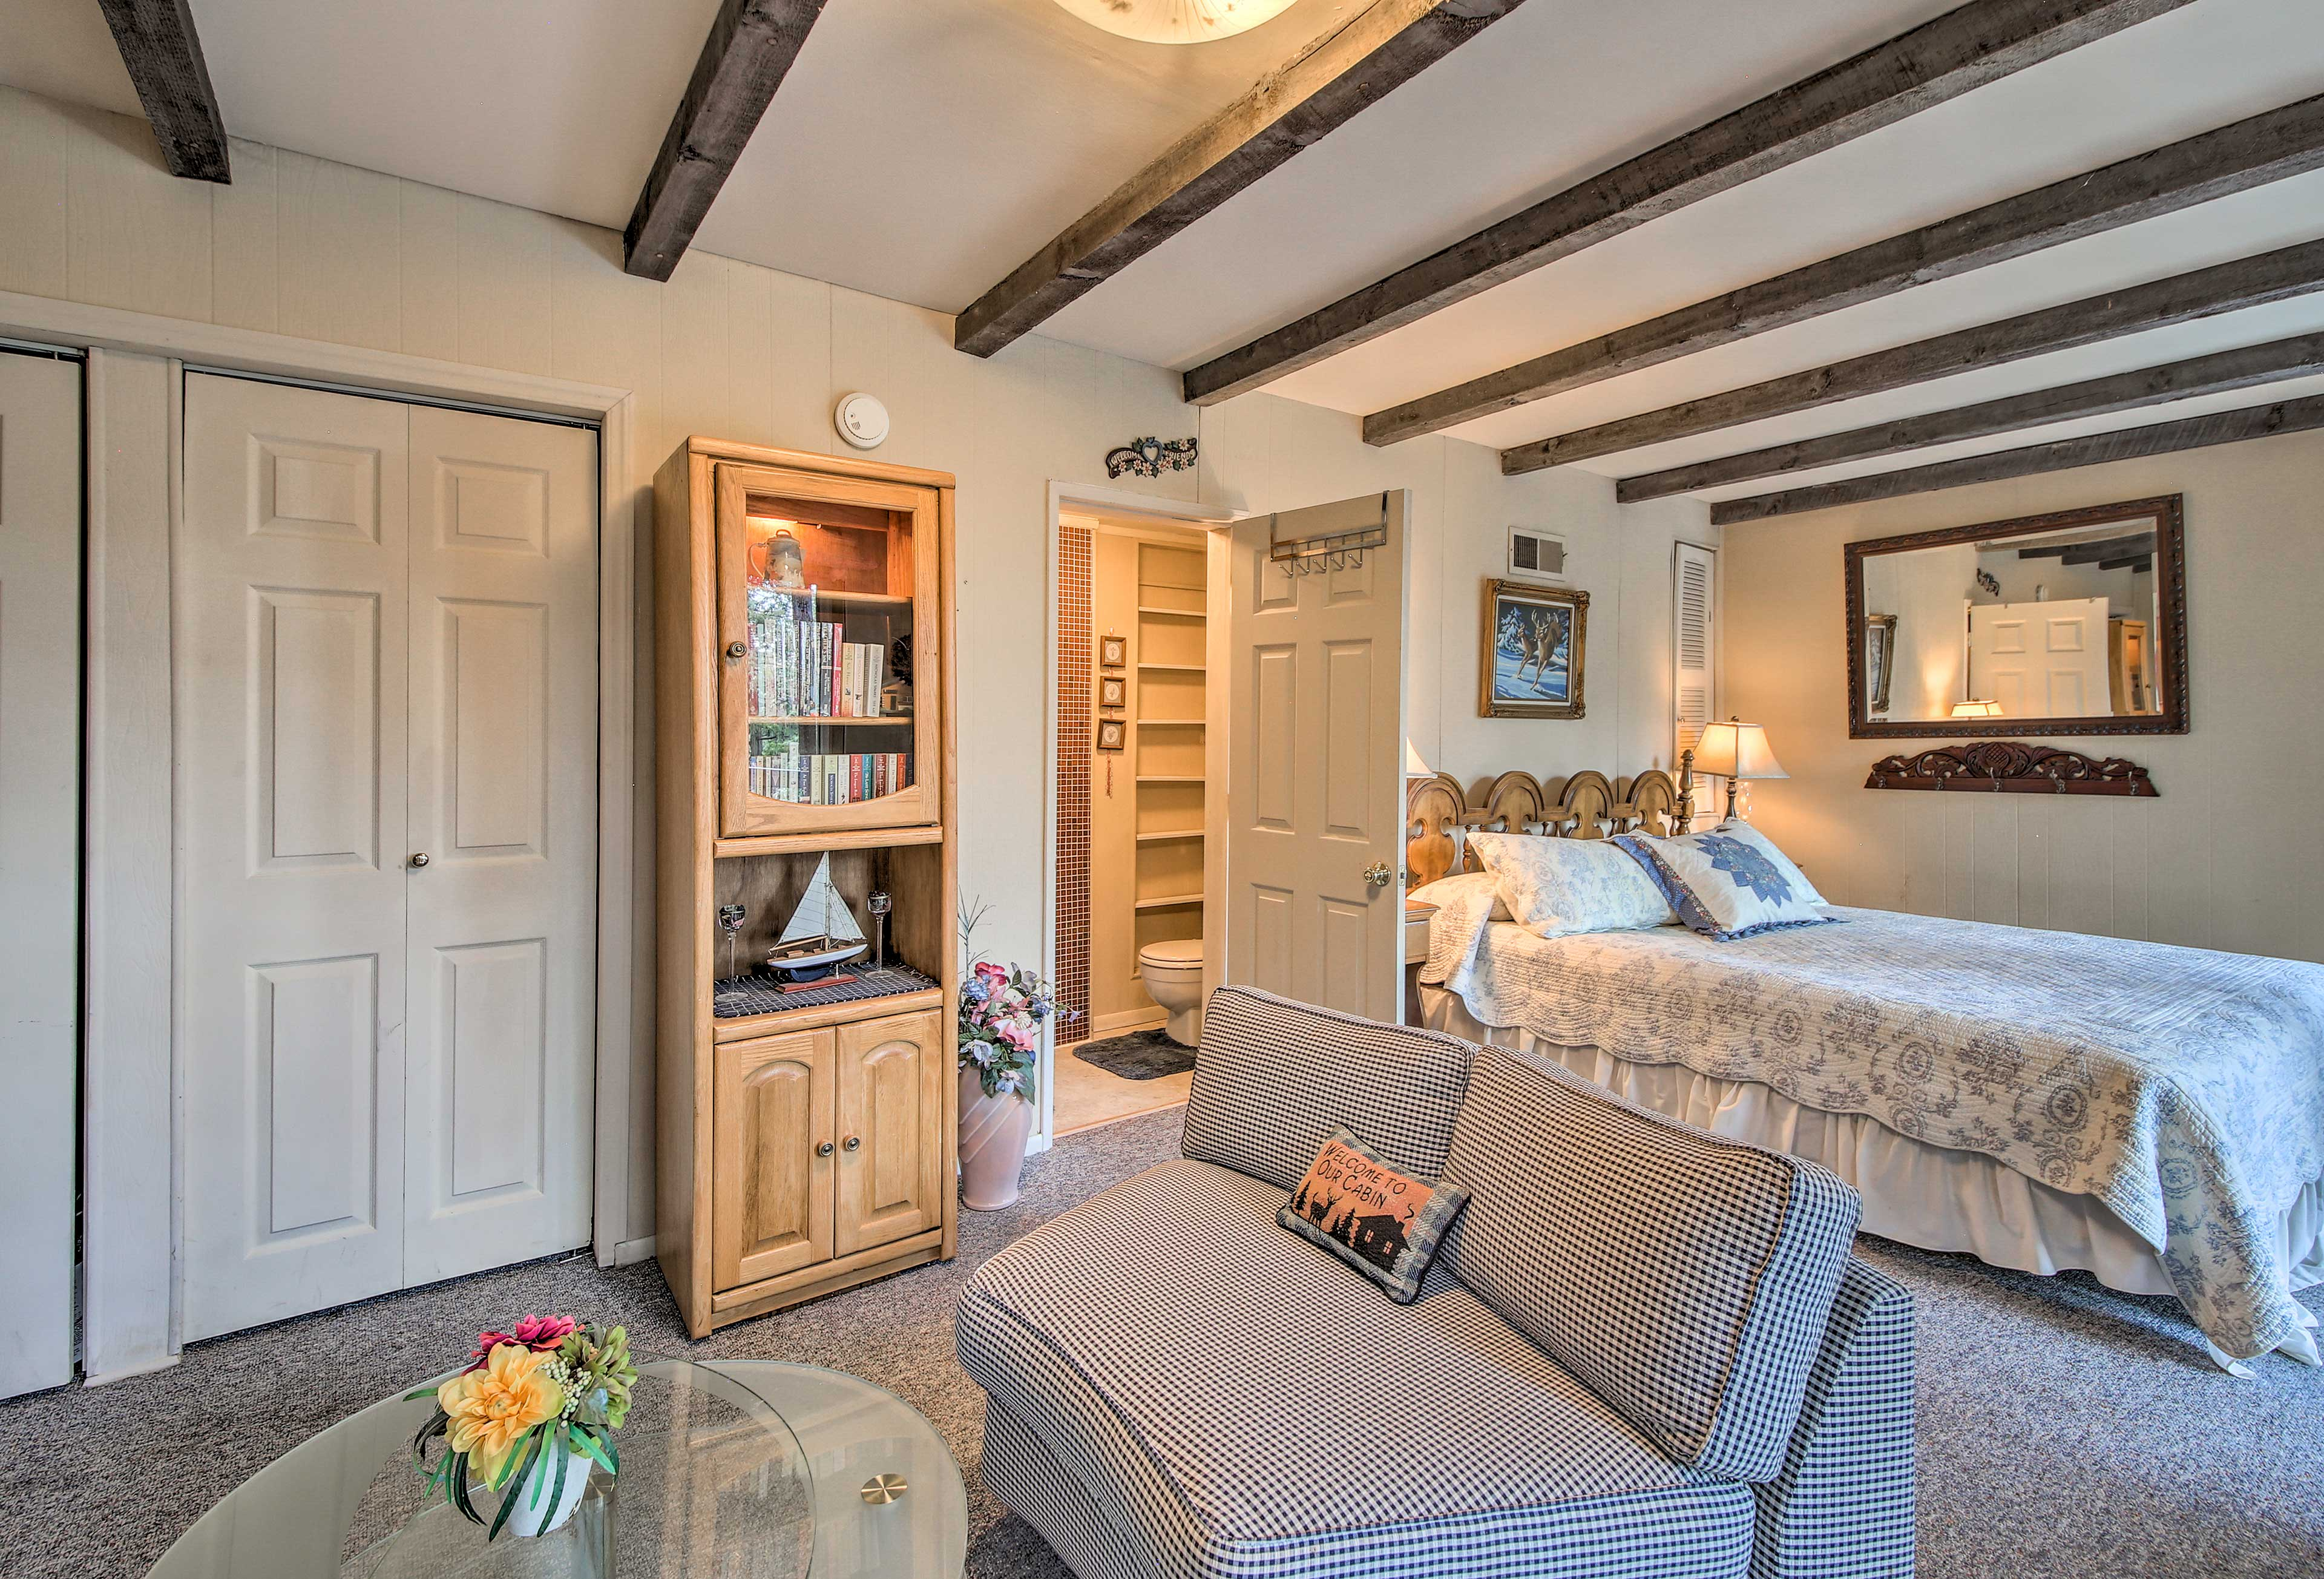 The room features a sitting area, king bed, deck access and en-suite bath.